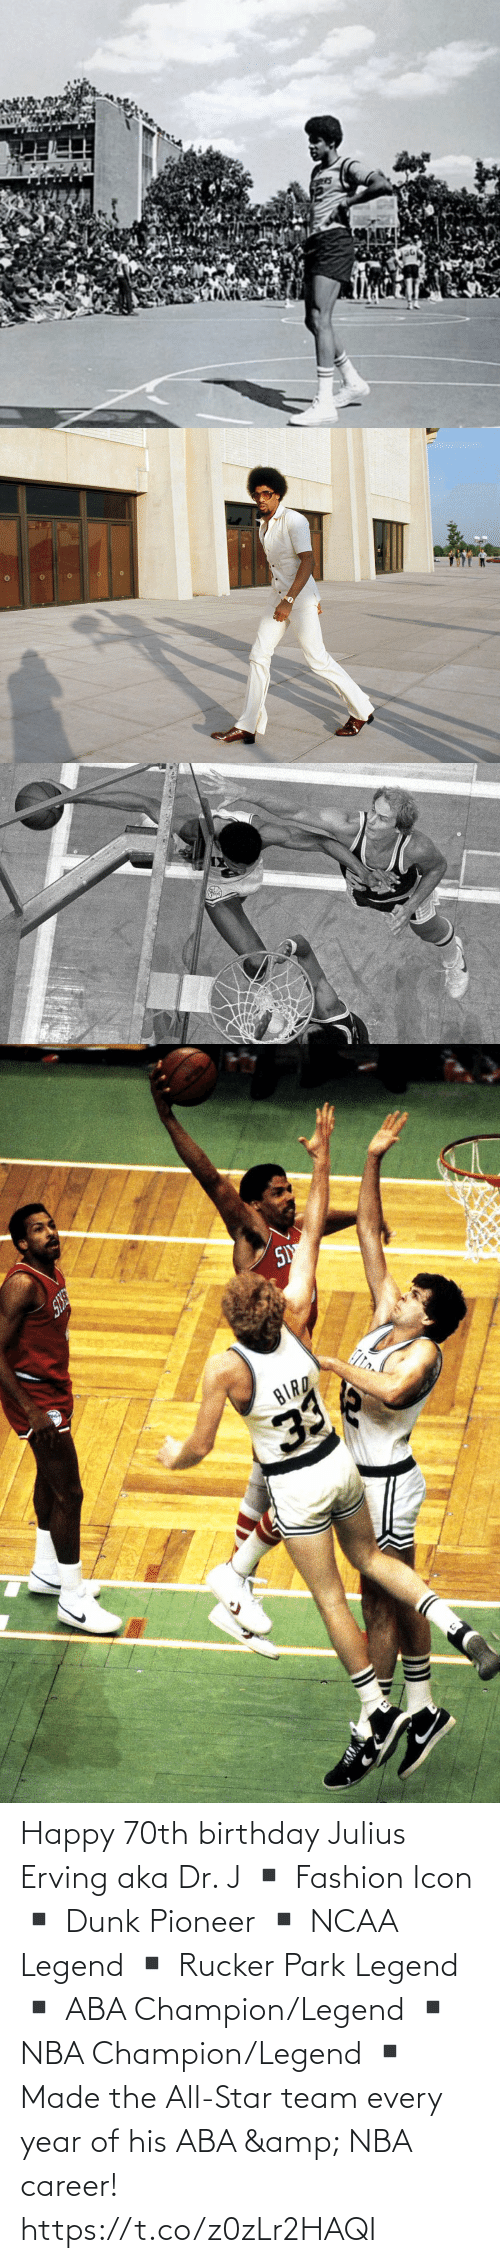 career: Happy 70th birthday Julius Erving aka Dr. J  ▪️ Fashion Icon ▪️ Dunk Pioneer ▪️ NCAA Legend ▪️ Rucker Park Legend ▪️ ABA Champion/Legend ▪️ NBA Champion/Legend ▪️ Made the All-Star team every year of his ABA & NBA career! https://t.co/z0zLr2HAQI